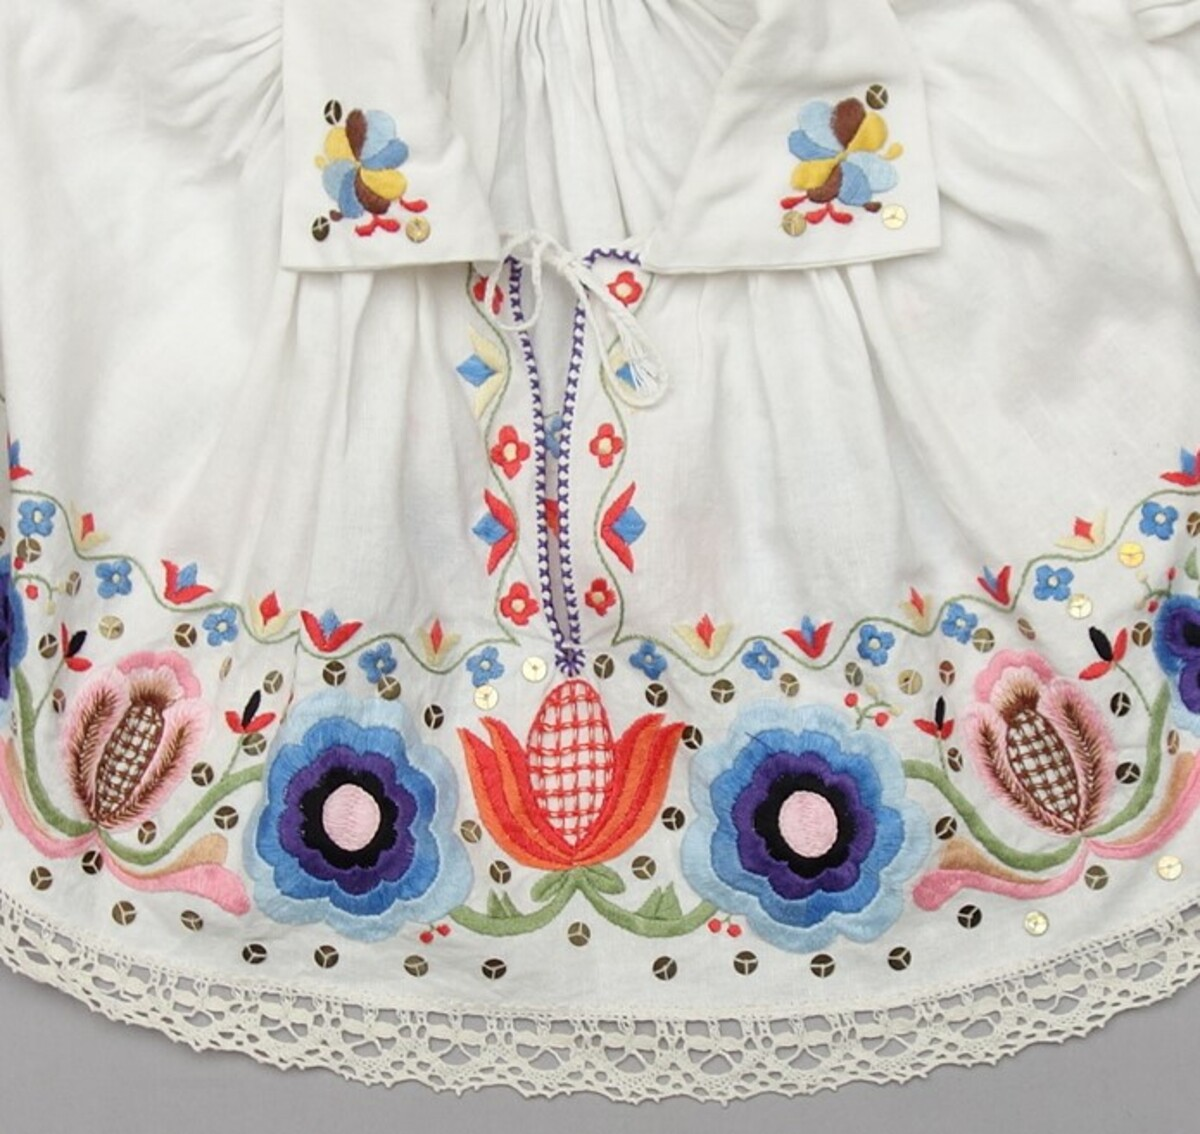 Detail of an embroidered blouse from the Kadrina parish, northern Estonia, early 21st century (TRC 2020.0010).